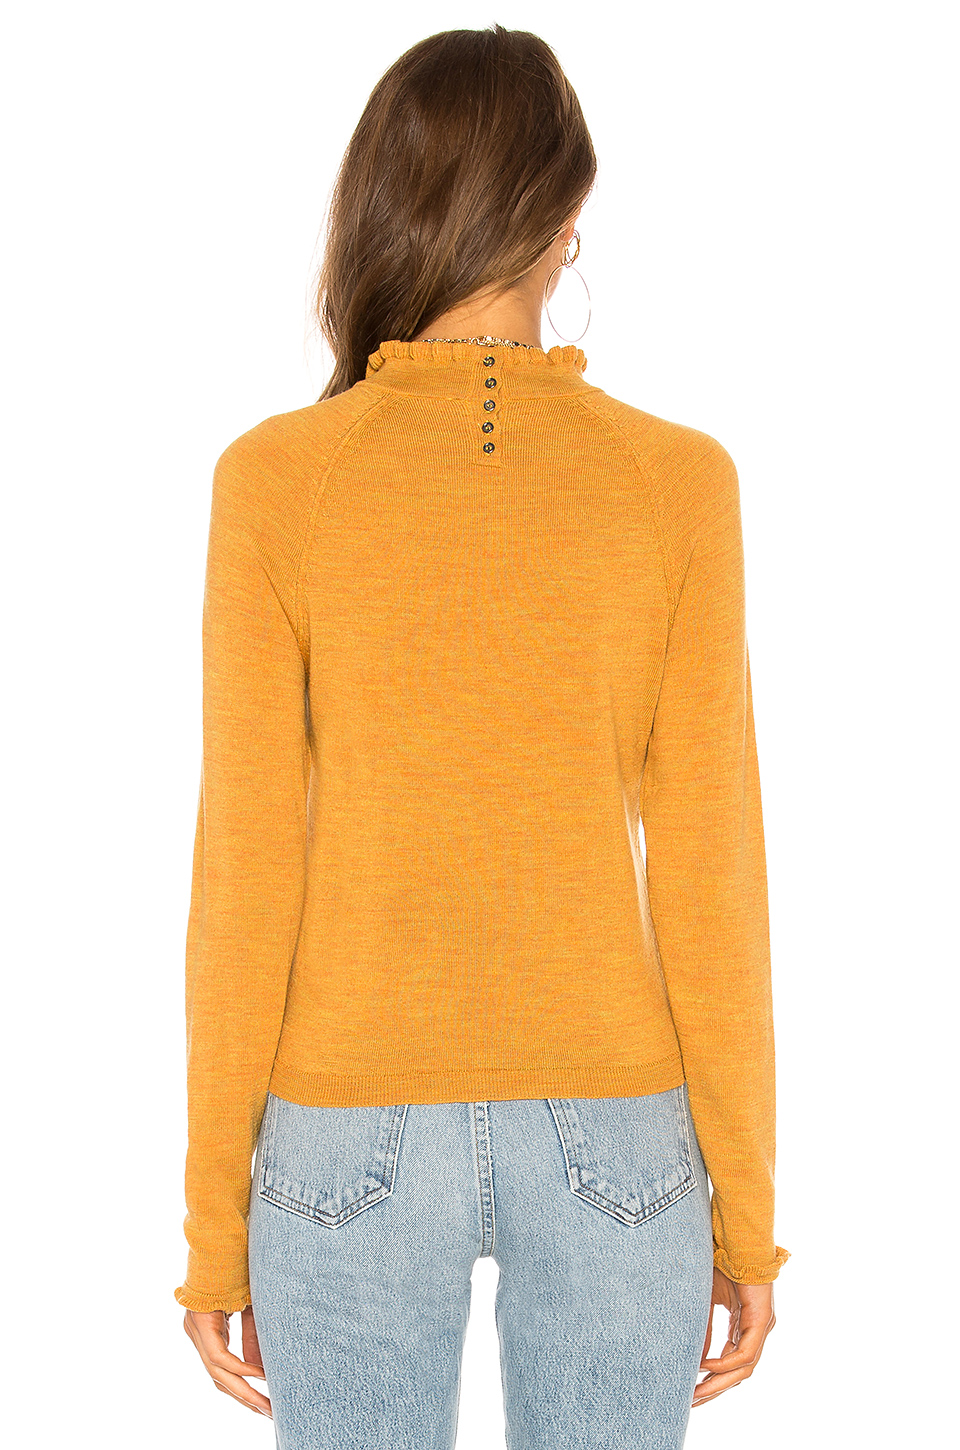 new styles 05cd9 83cb0 Needle And Thread Merino Pullover, Free People